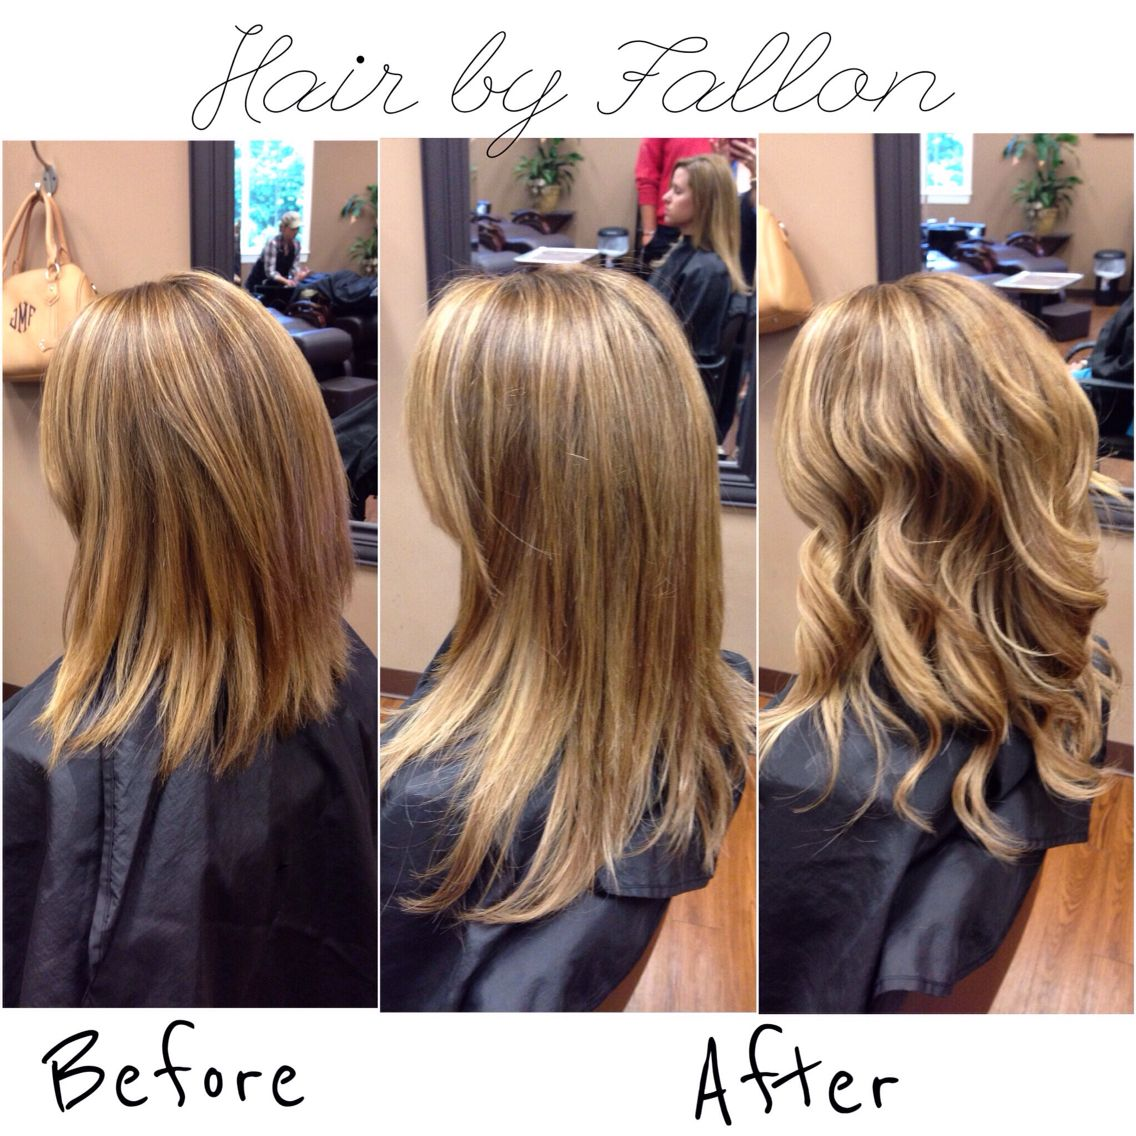 Hot Heads Extensions Before After Hairbyfallon Hair Pinterest